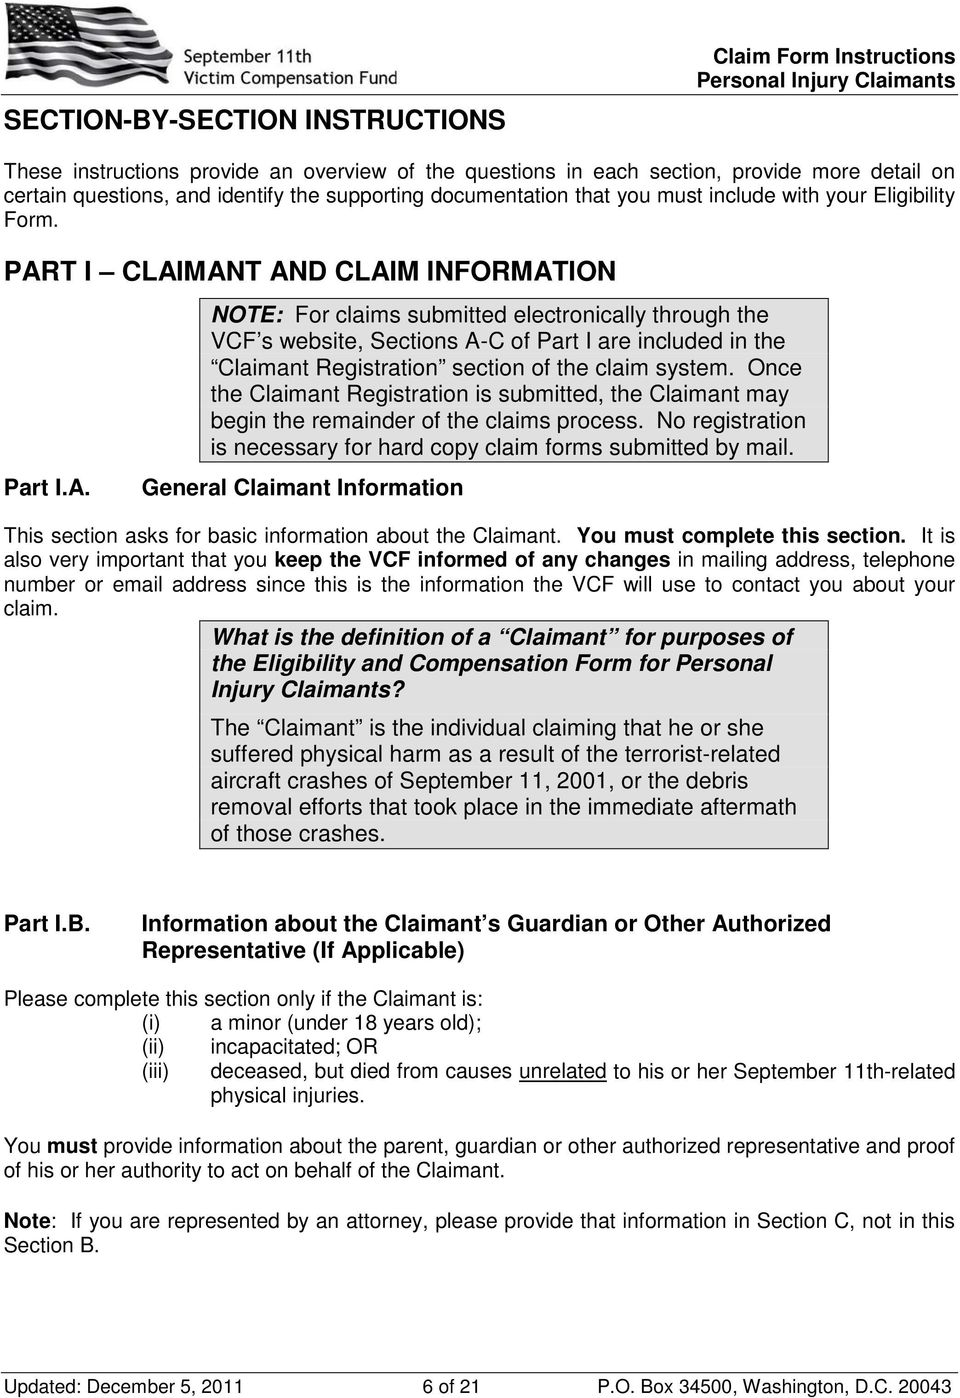 T I CLAIMANT AND CLAIM INFORMATION Part I.A. NOTE: For claims submitted electronically through the VCF s website, Sections A-C of Part I are included in the Claimant Registration section of the claim system.